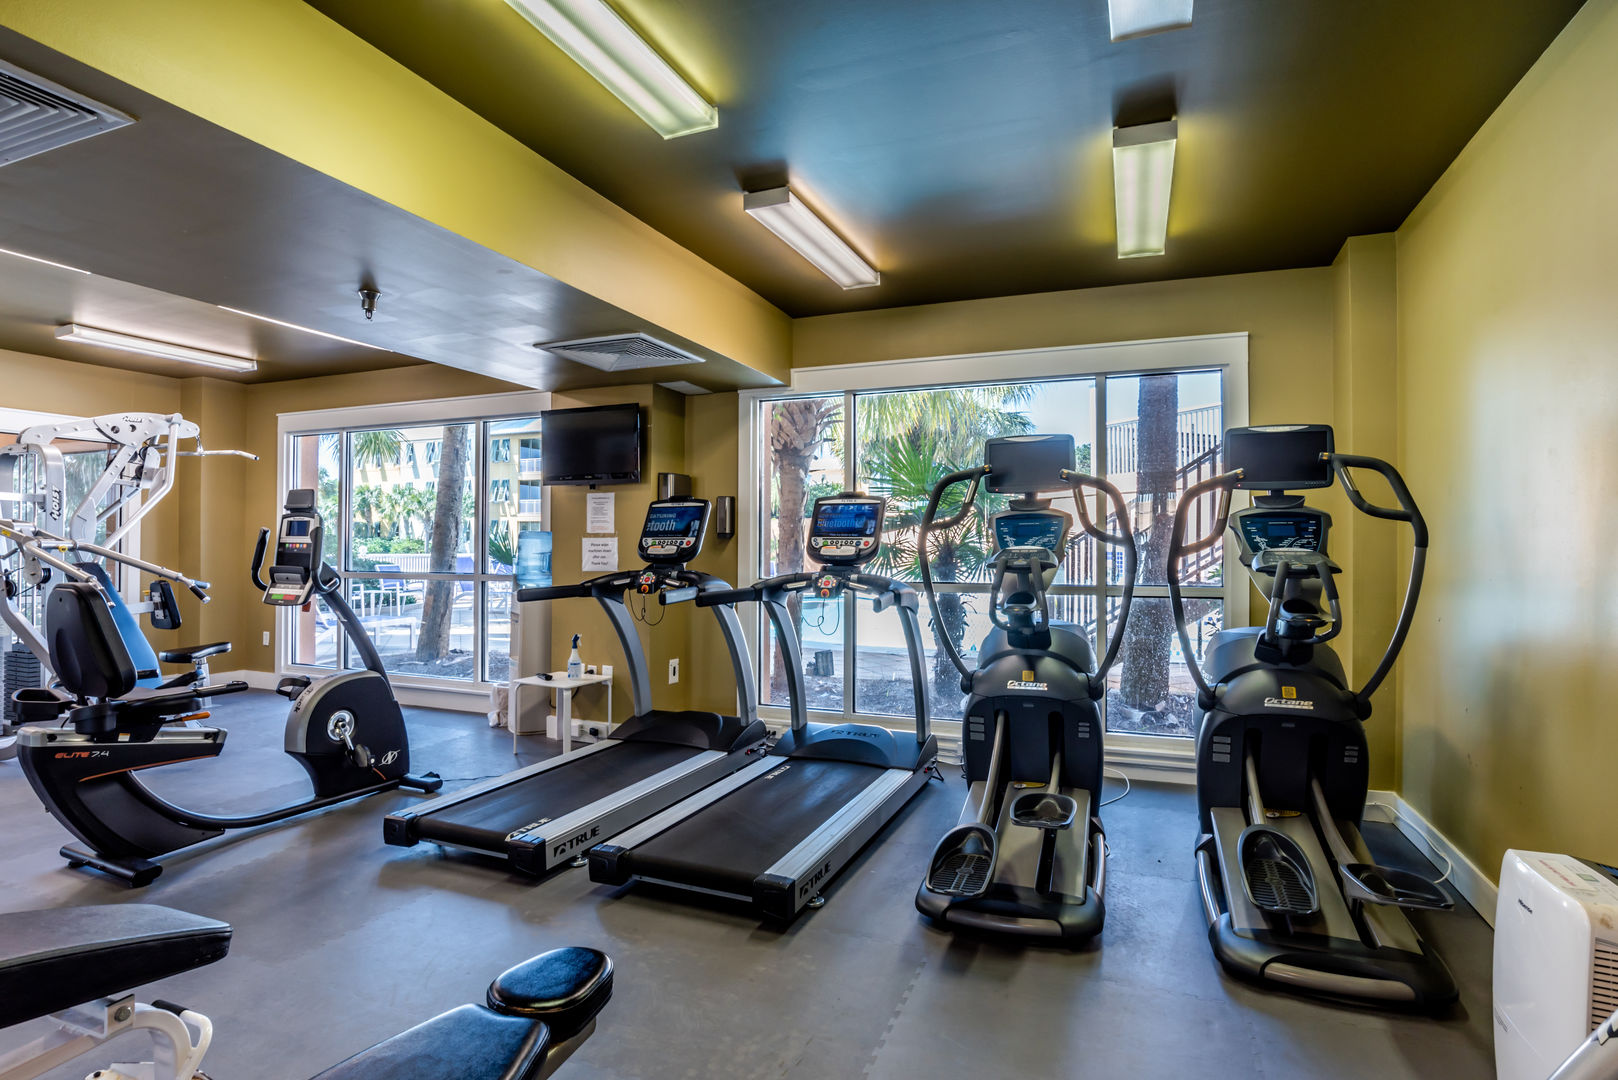 Guests Have Access to Fitness Center.